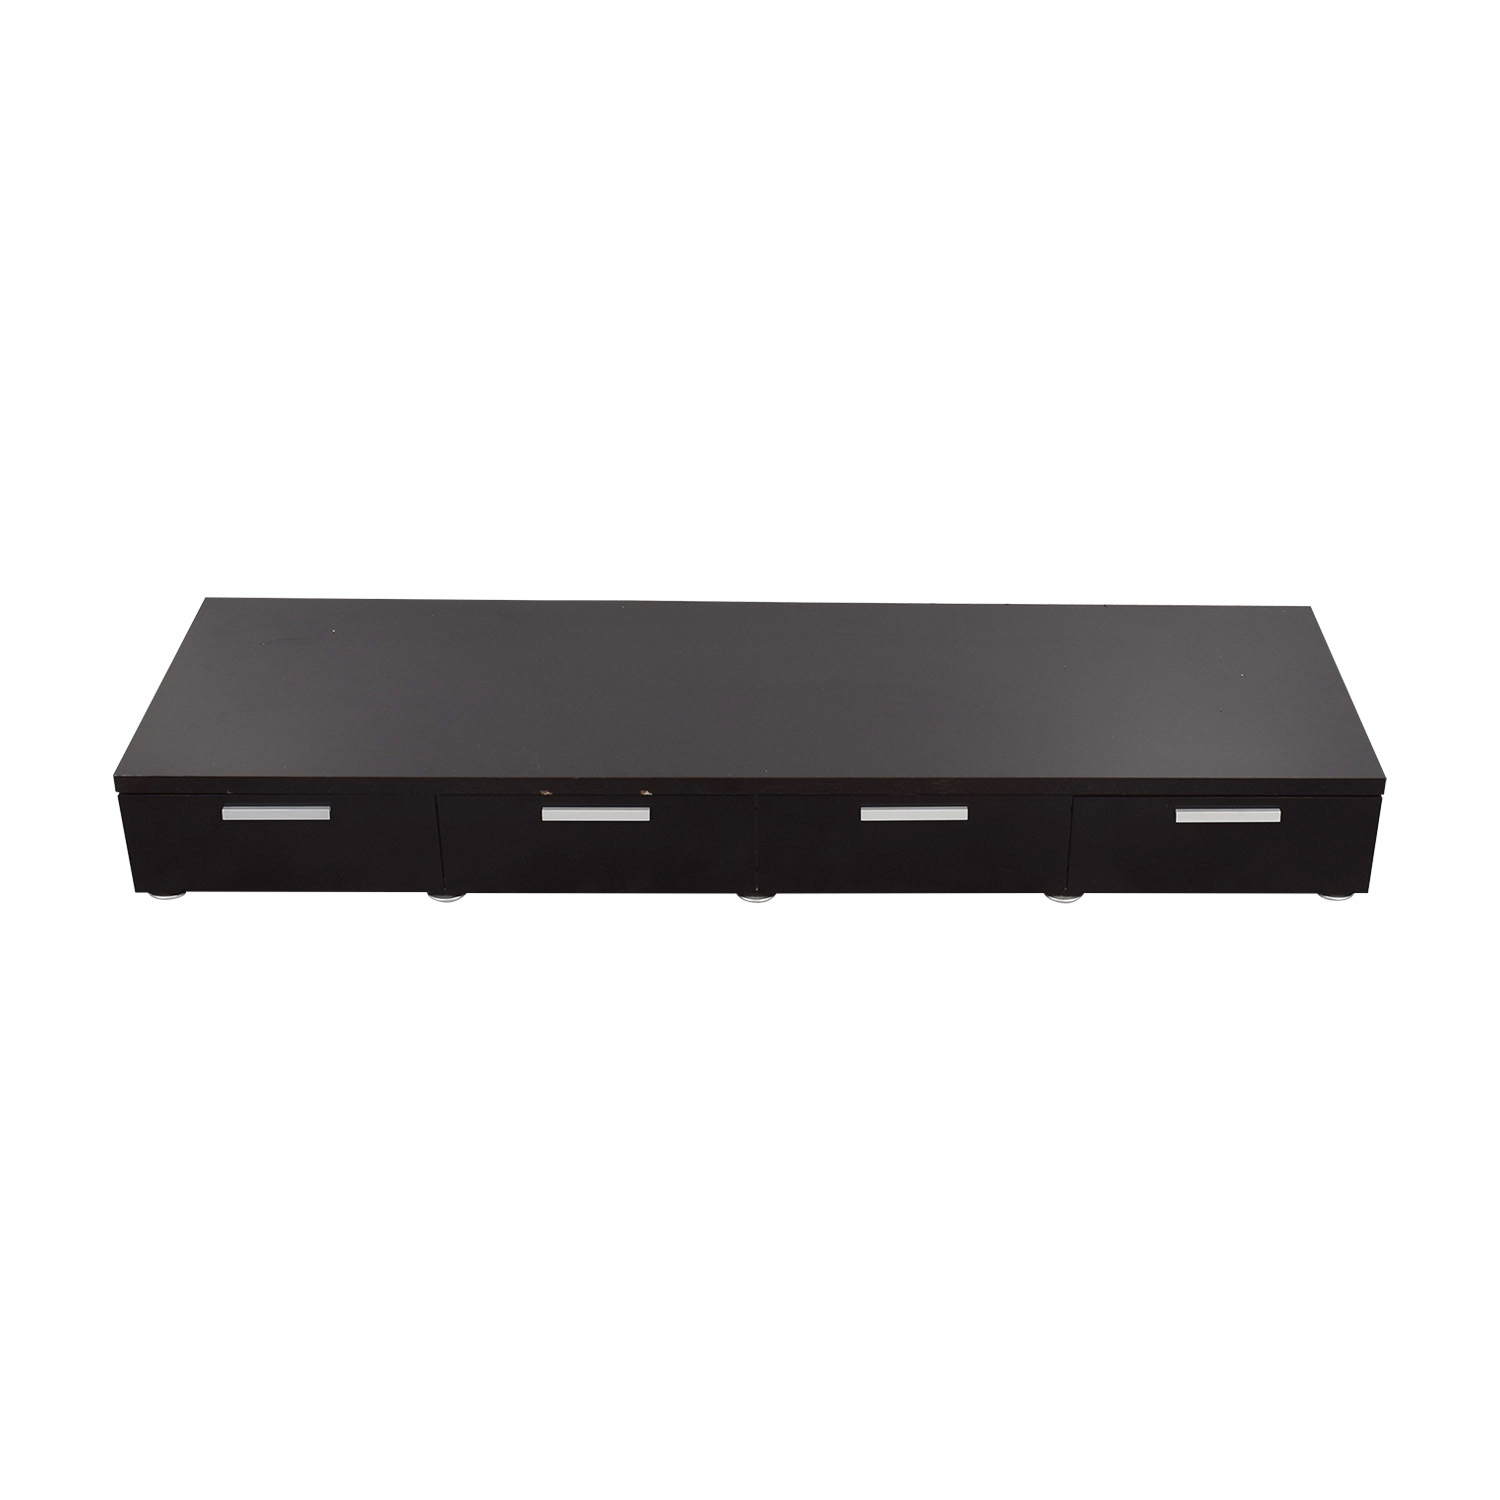 Bo Concept Bo Concept Black TV Media Console dimensions